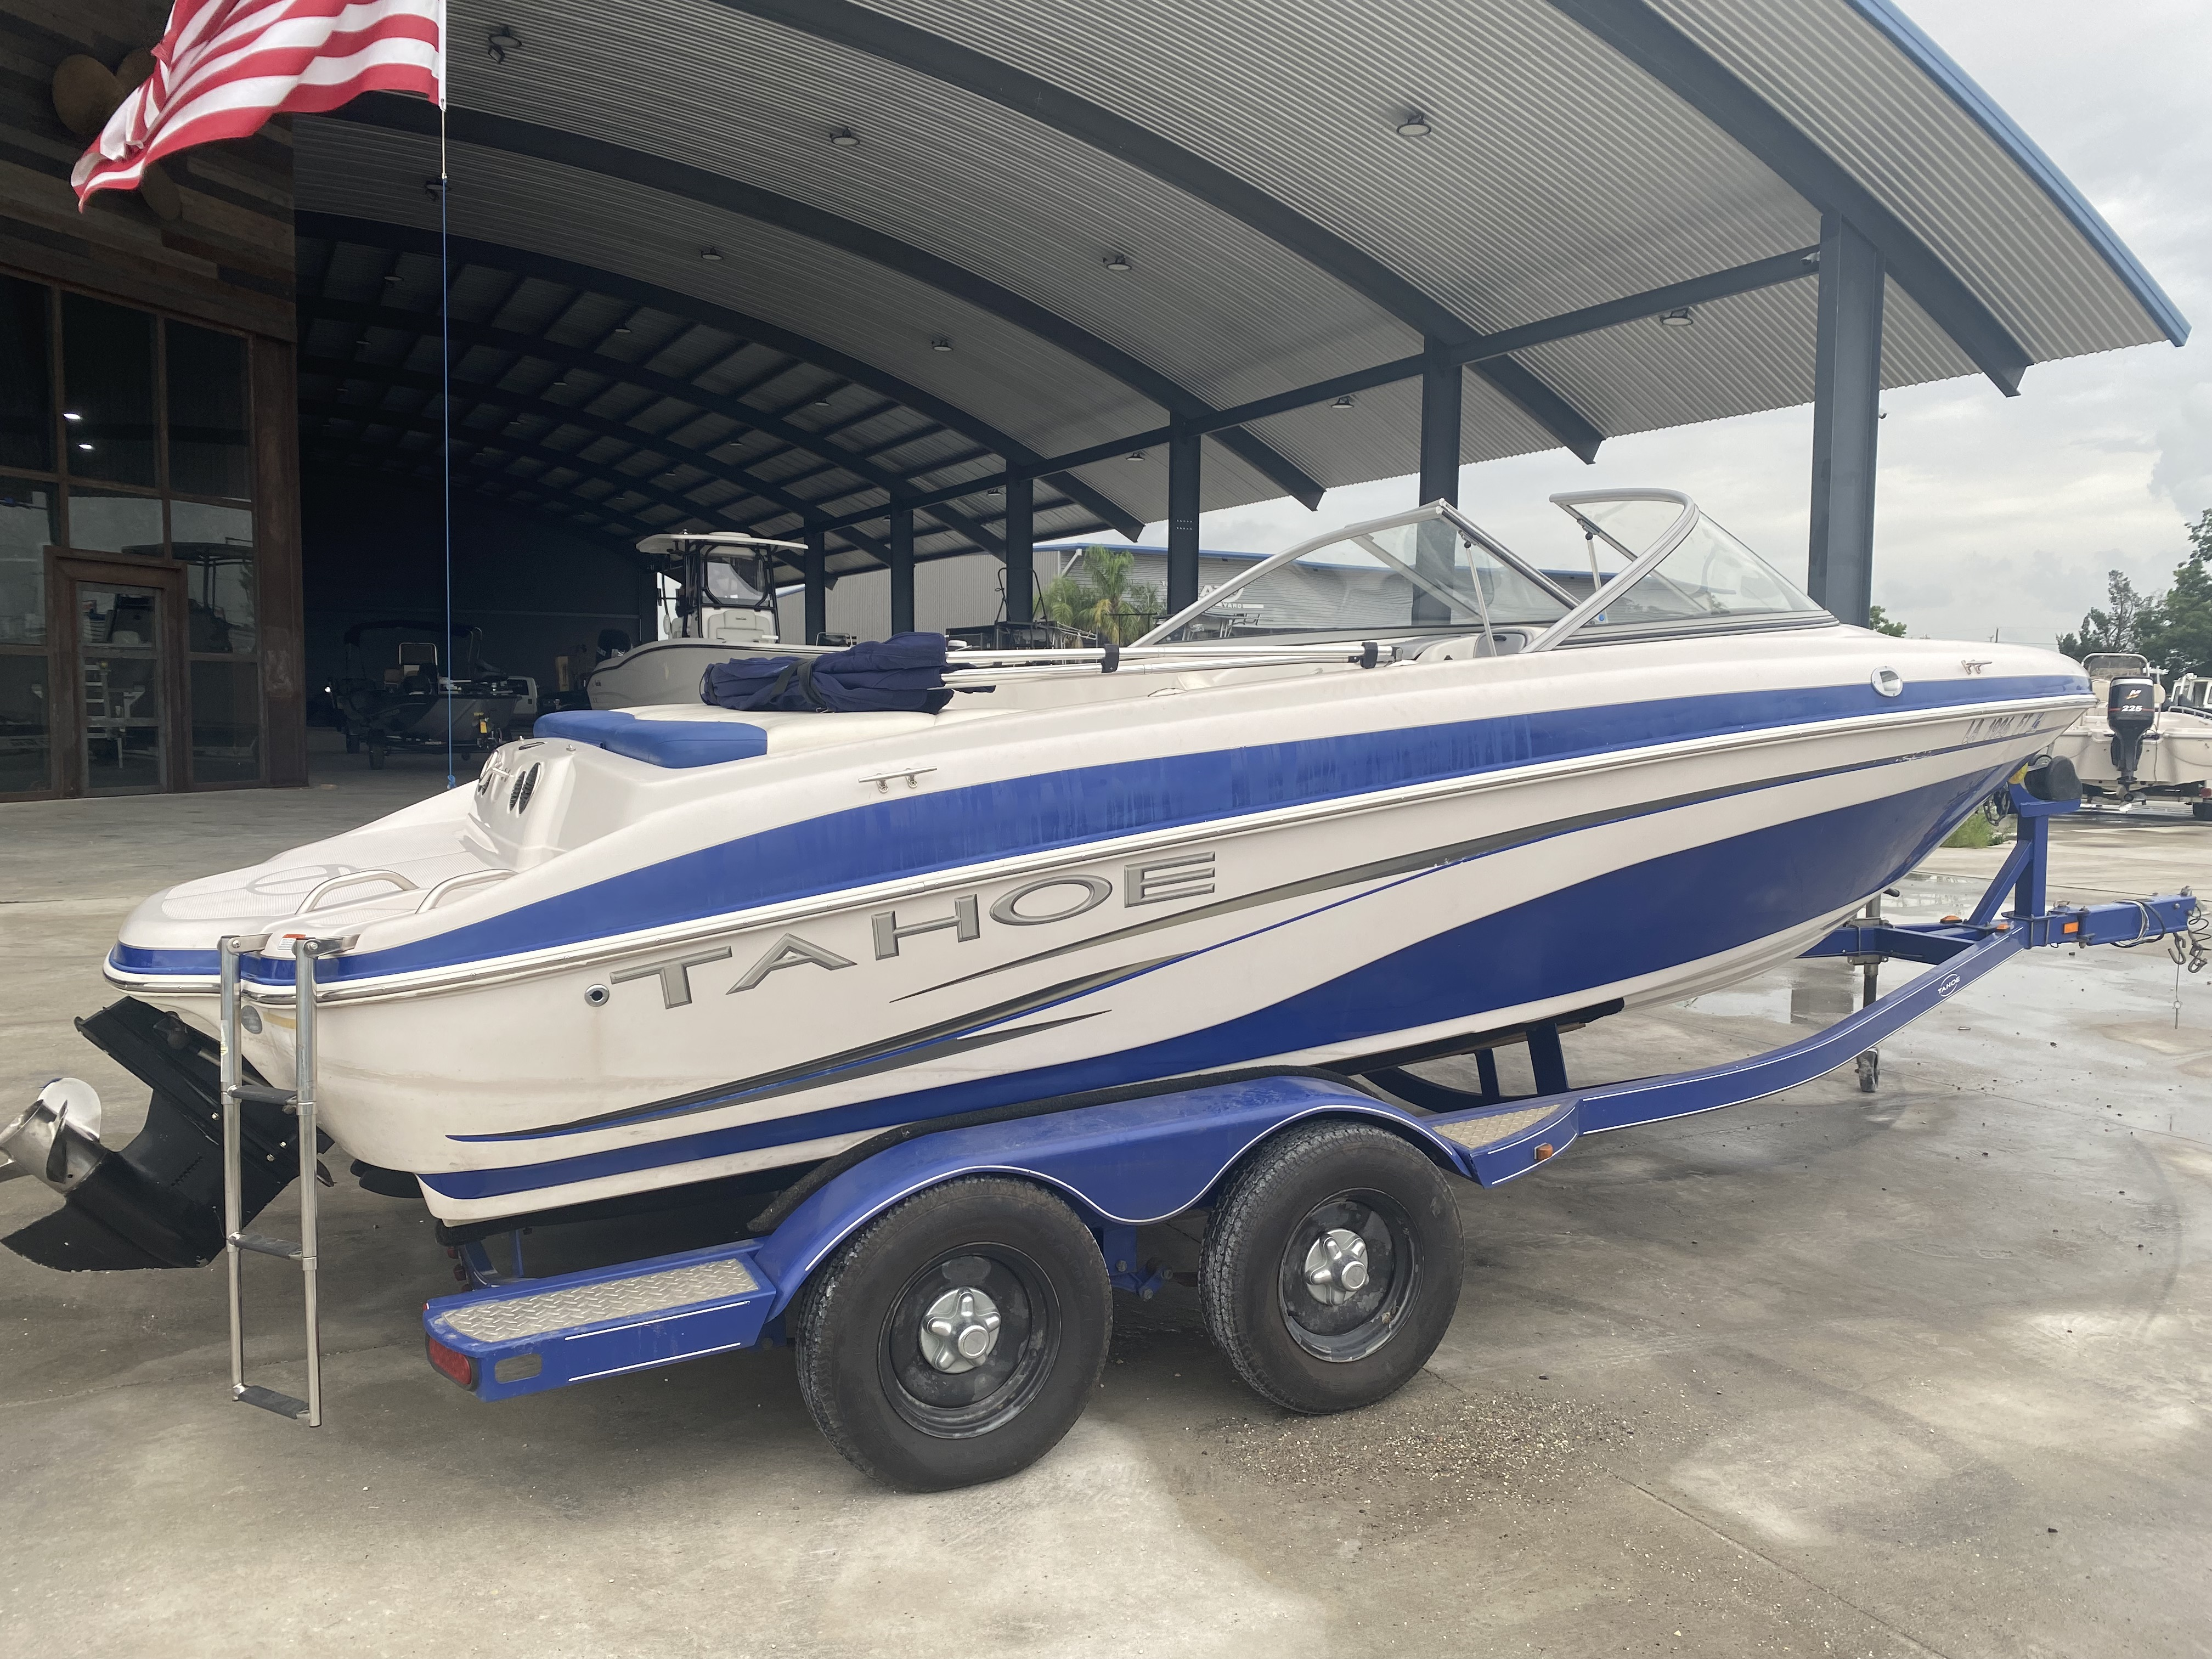 2008 Tahoe boat for sale, model of the boat is Q6 & Image # 3 of 10